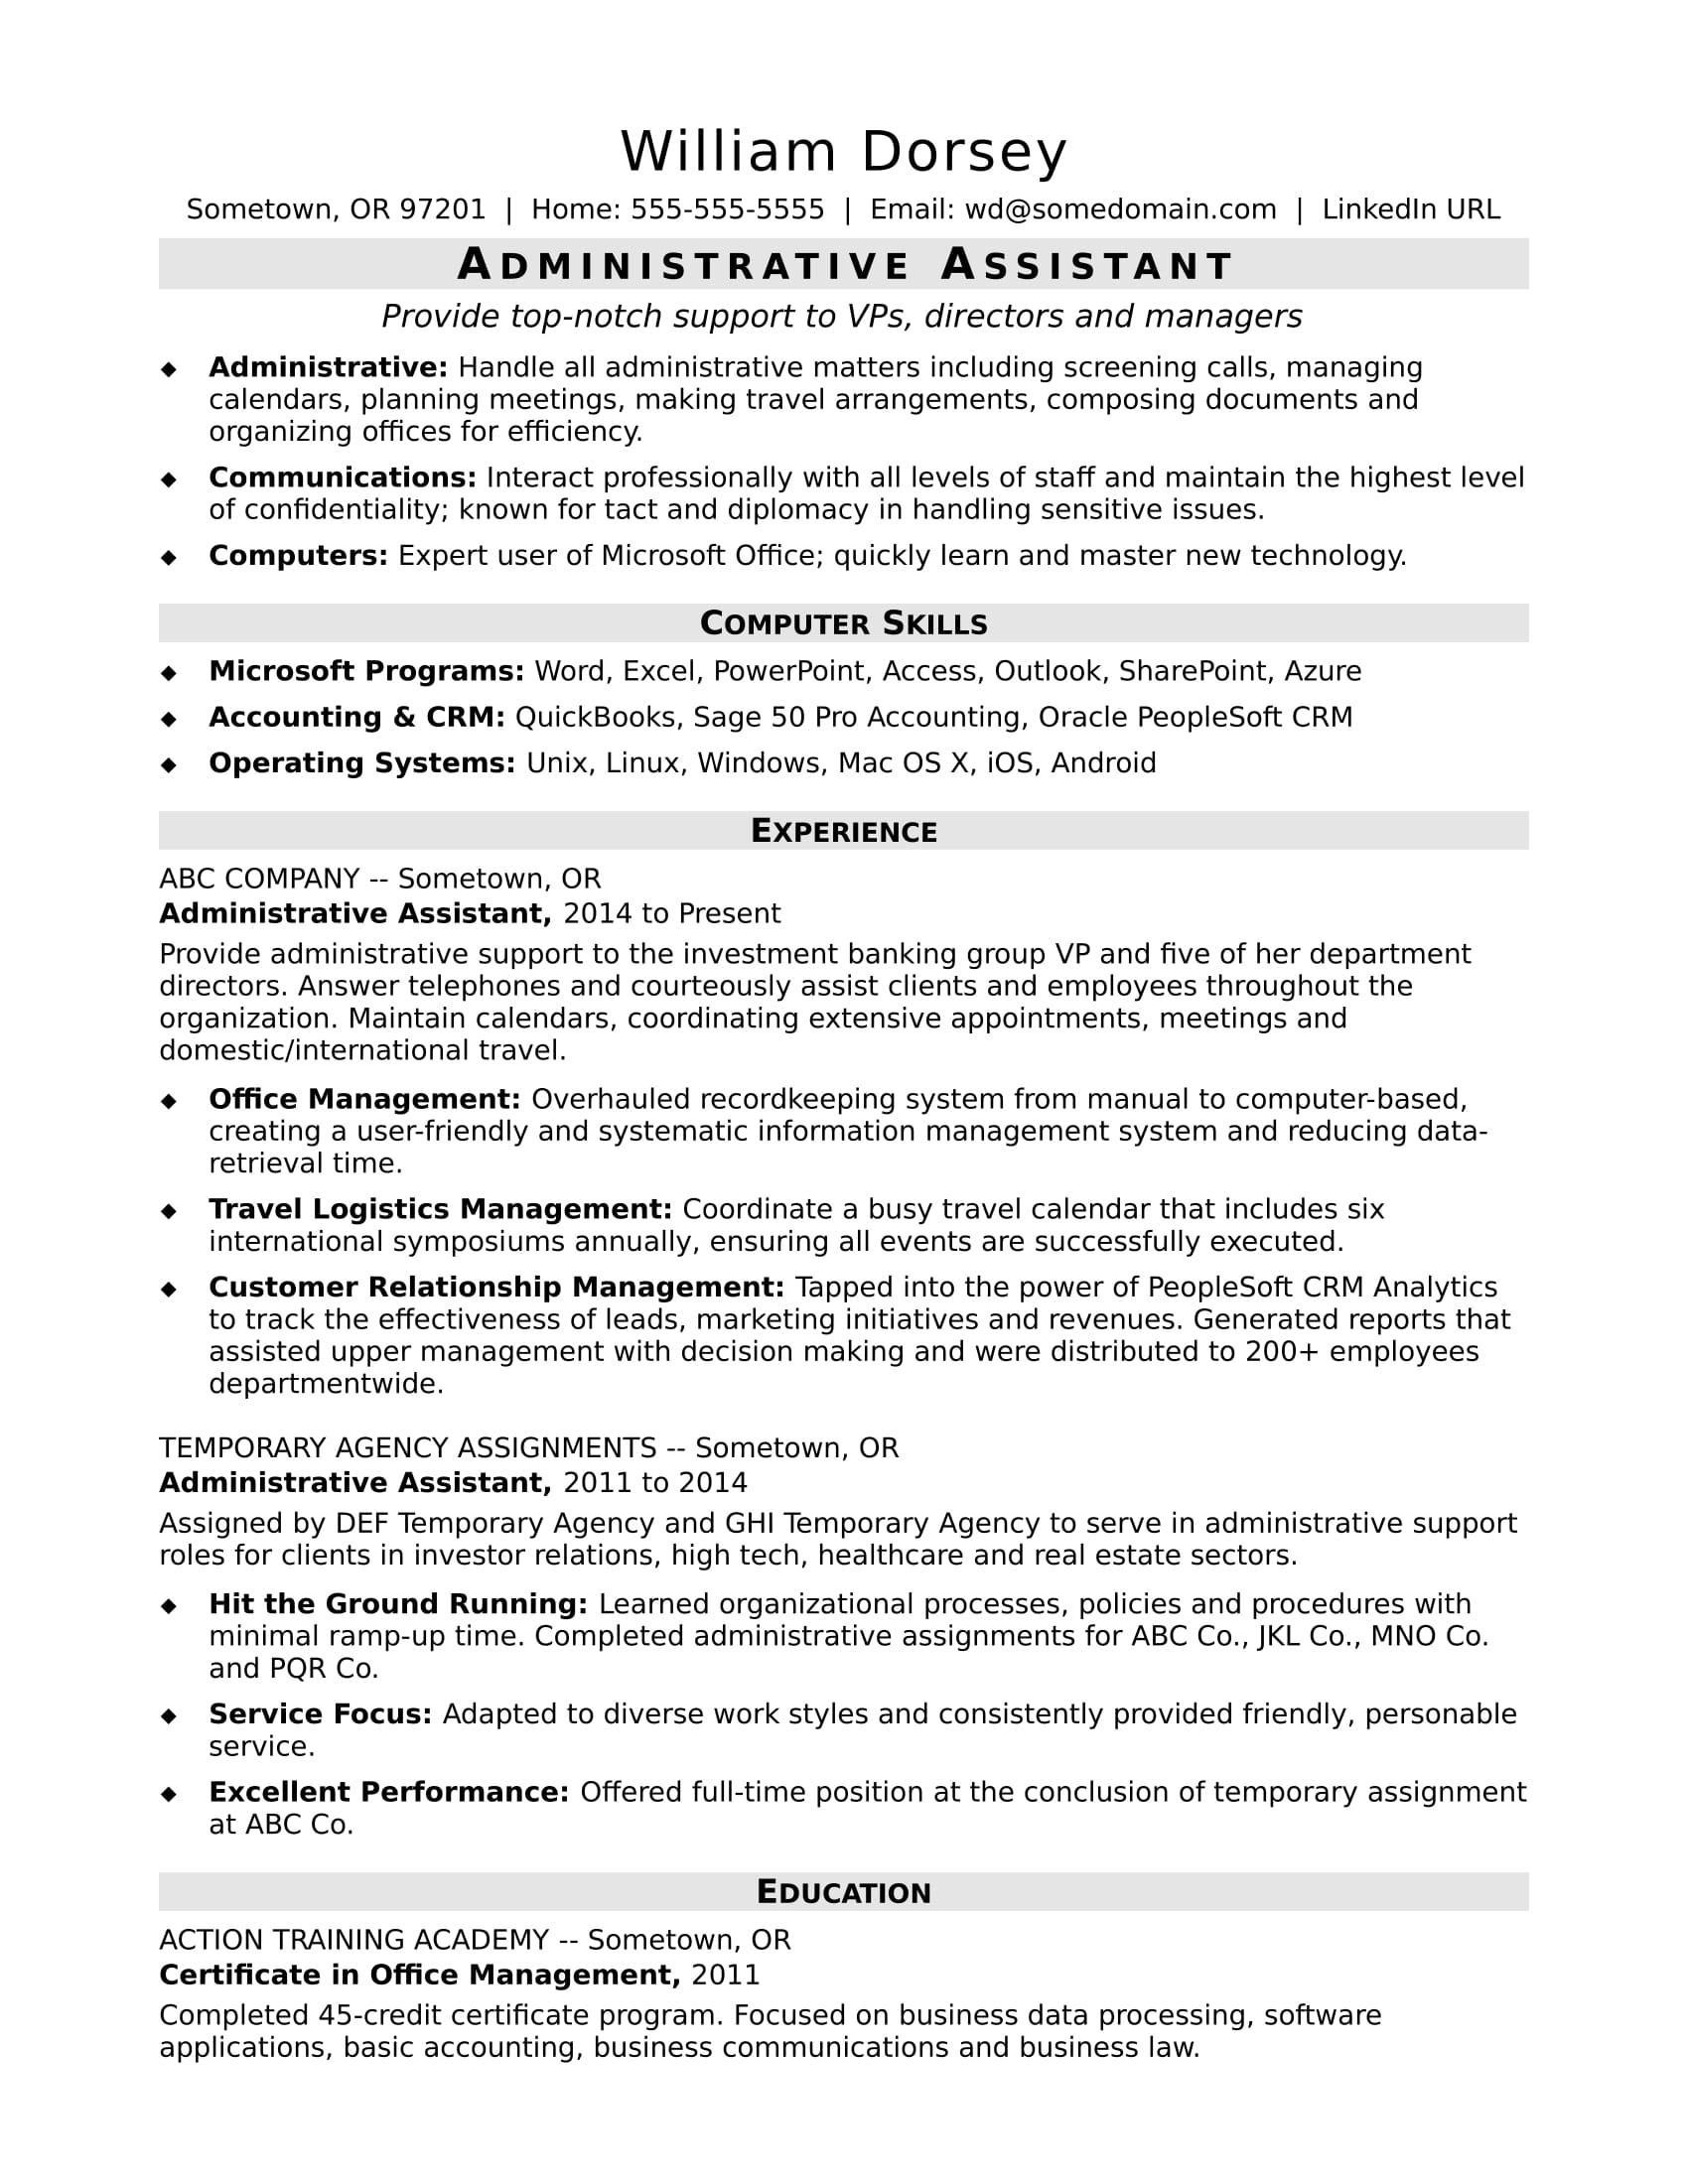 midlevel administrative assistant resume sample monster healthcare with little work Resume Healthcare Administrative Assistant Resume